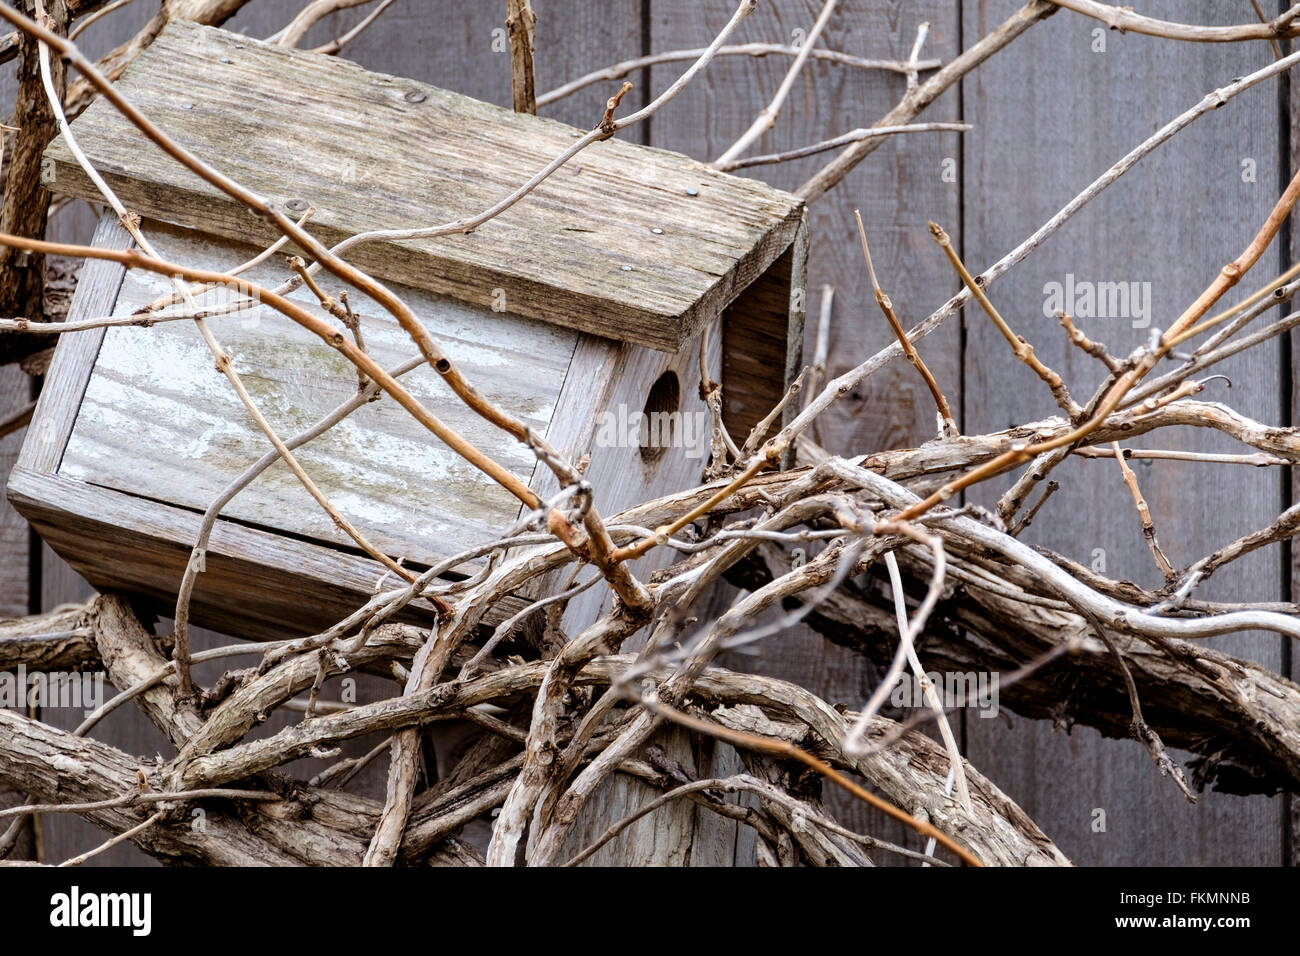 The tangled vines of a Trumpet Vine before leaves emerge in the spring.  A wooden birdhouse nestled within. - Stock Image